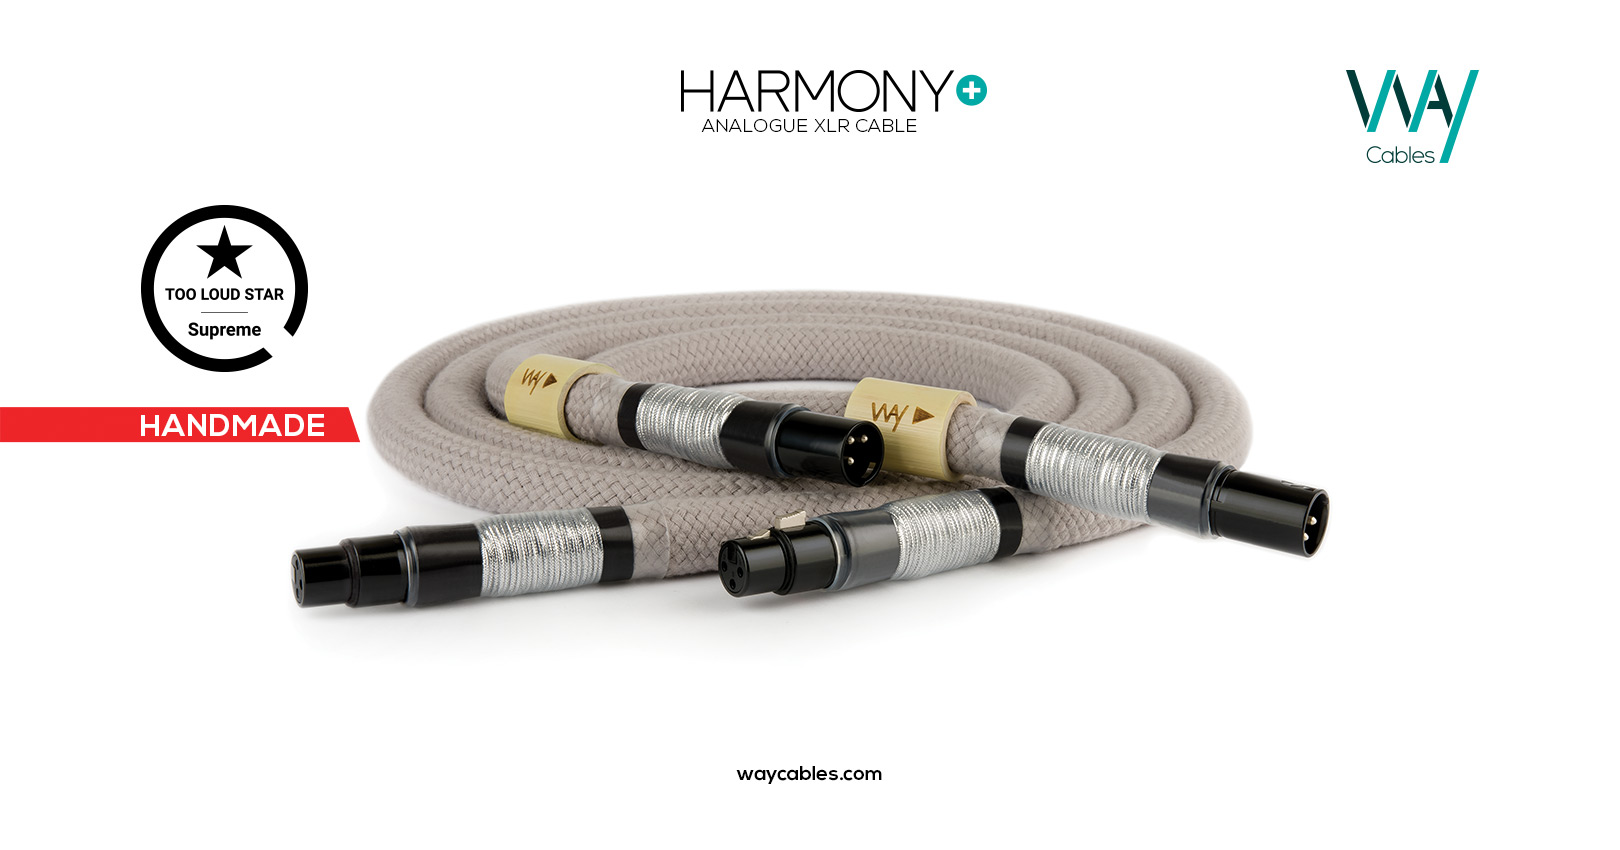 WayCables_Inter_Harmony 1